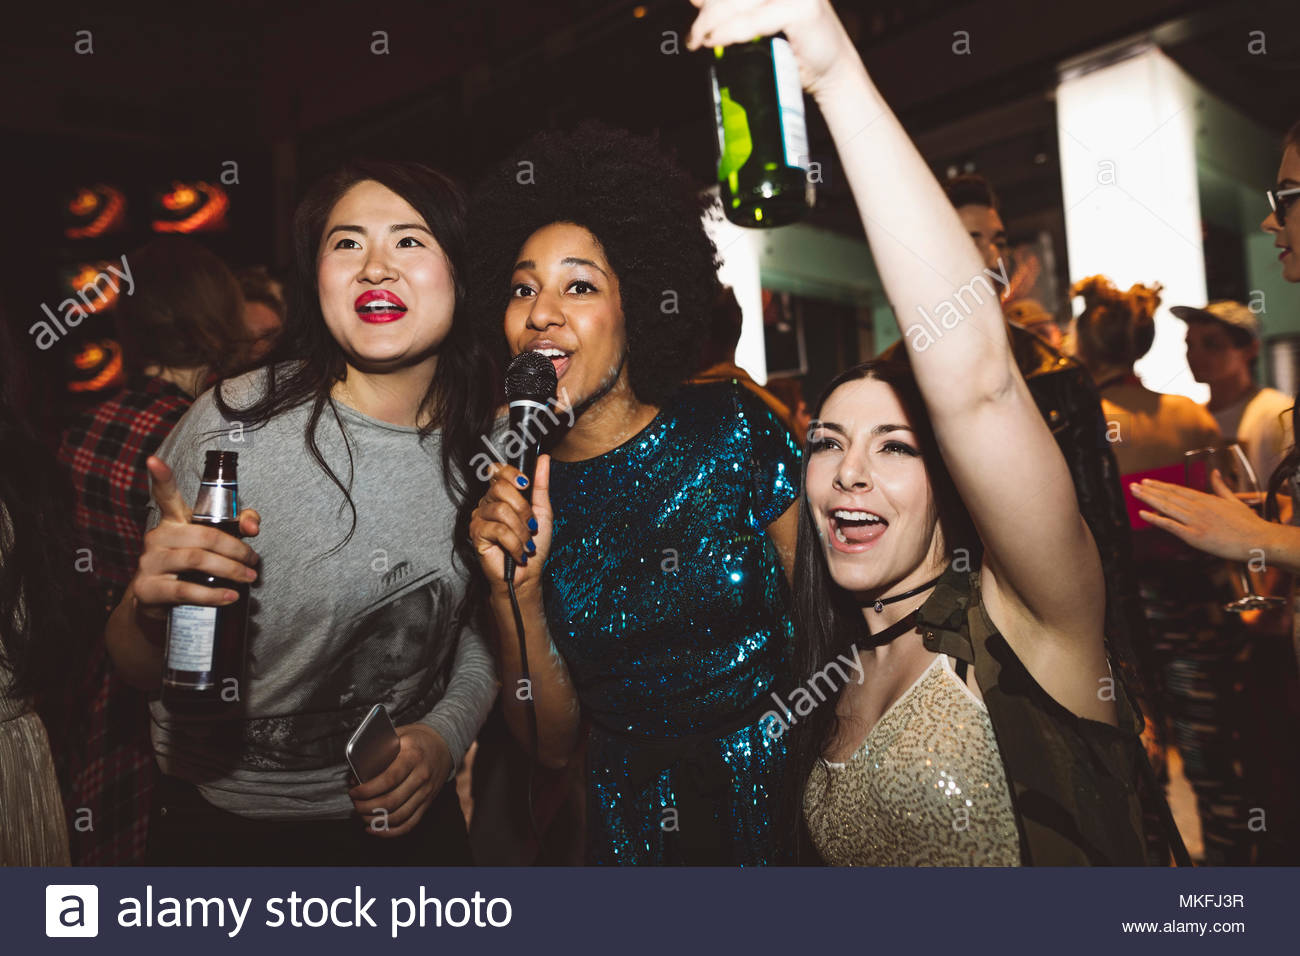 Playful young female millennial friends drinking beer and singing karaoke at nightclub - Stock Image